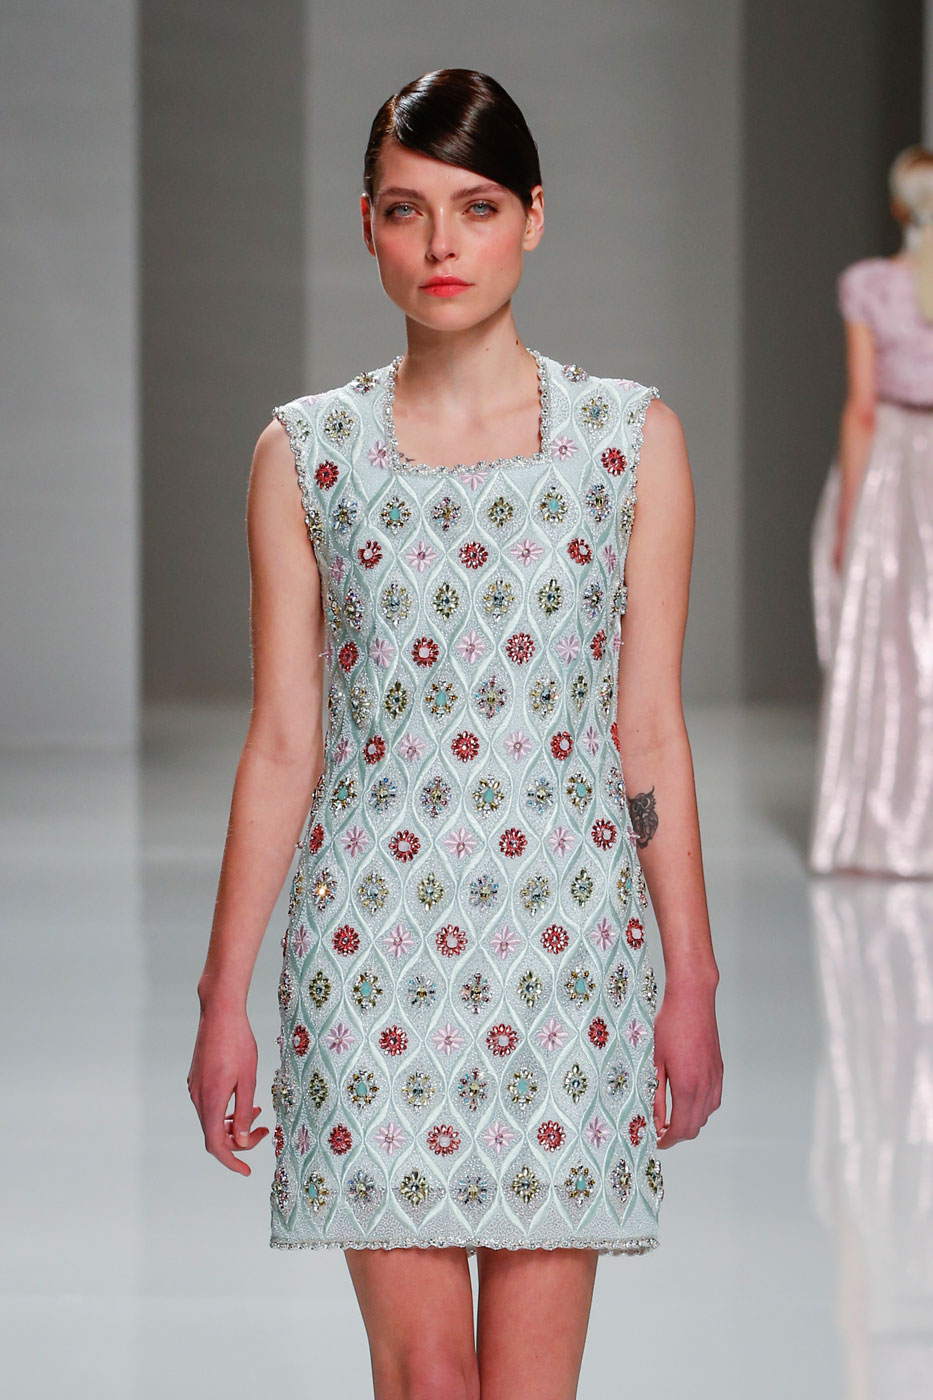 Georges-Hobeika-fashion-runway-show-haute-couture-paris-spring-2015-the-impression-16